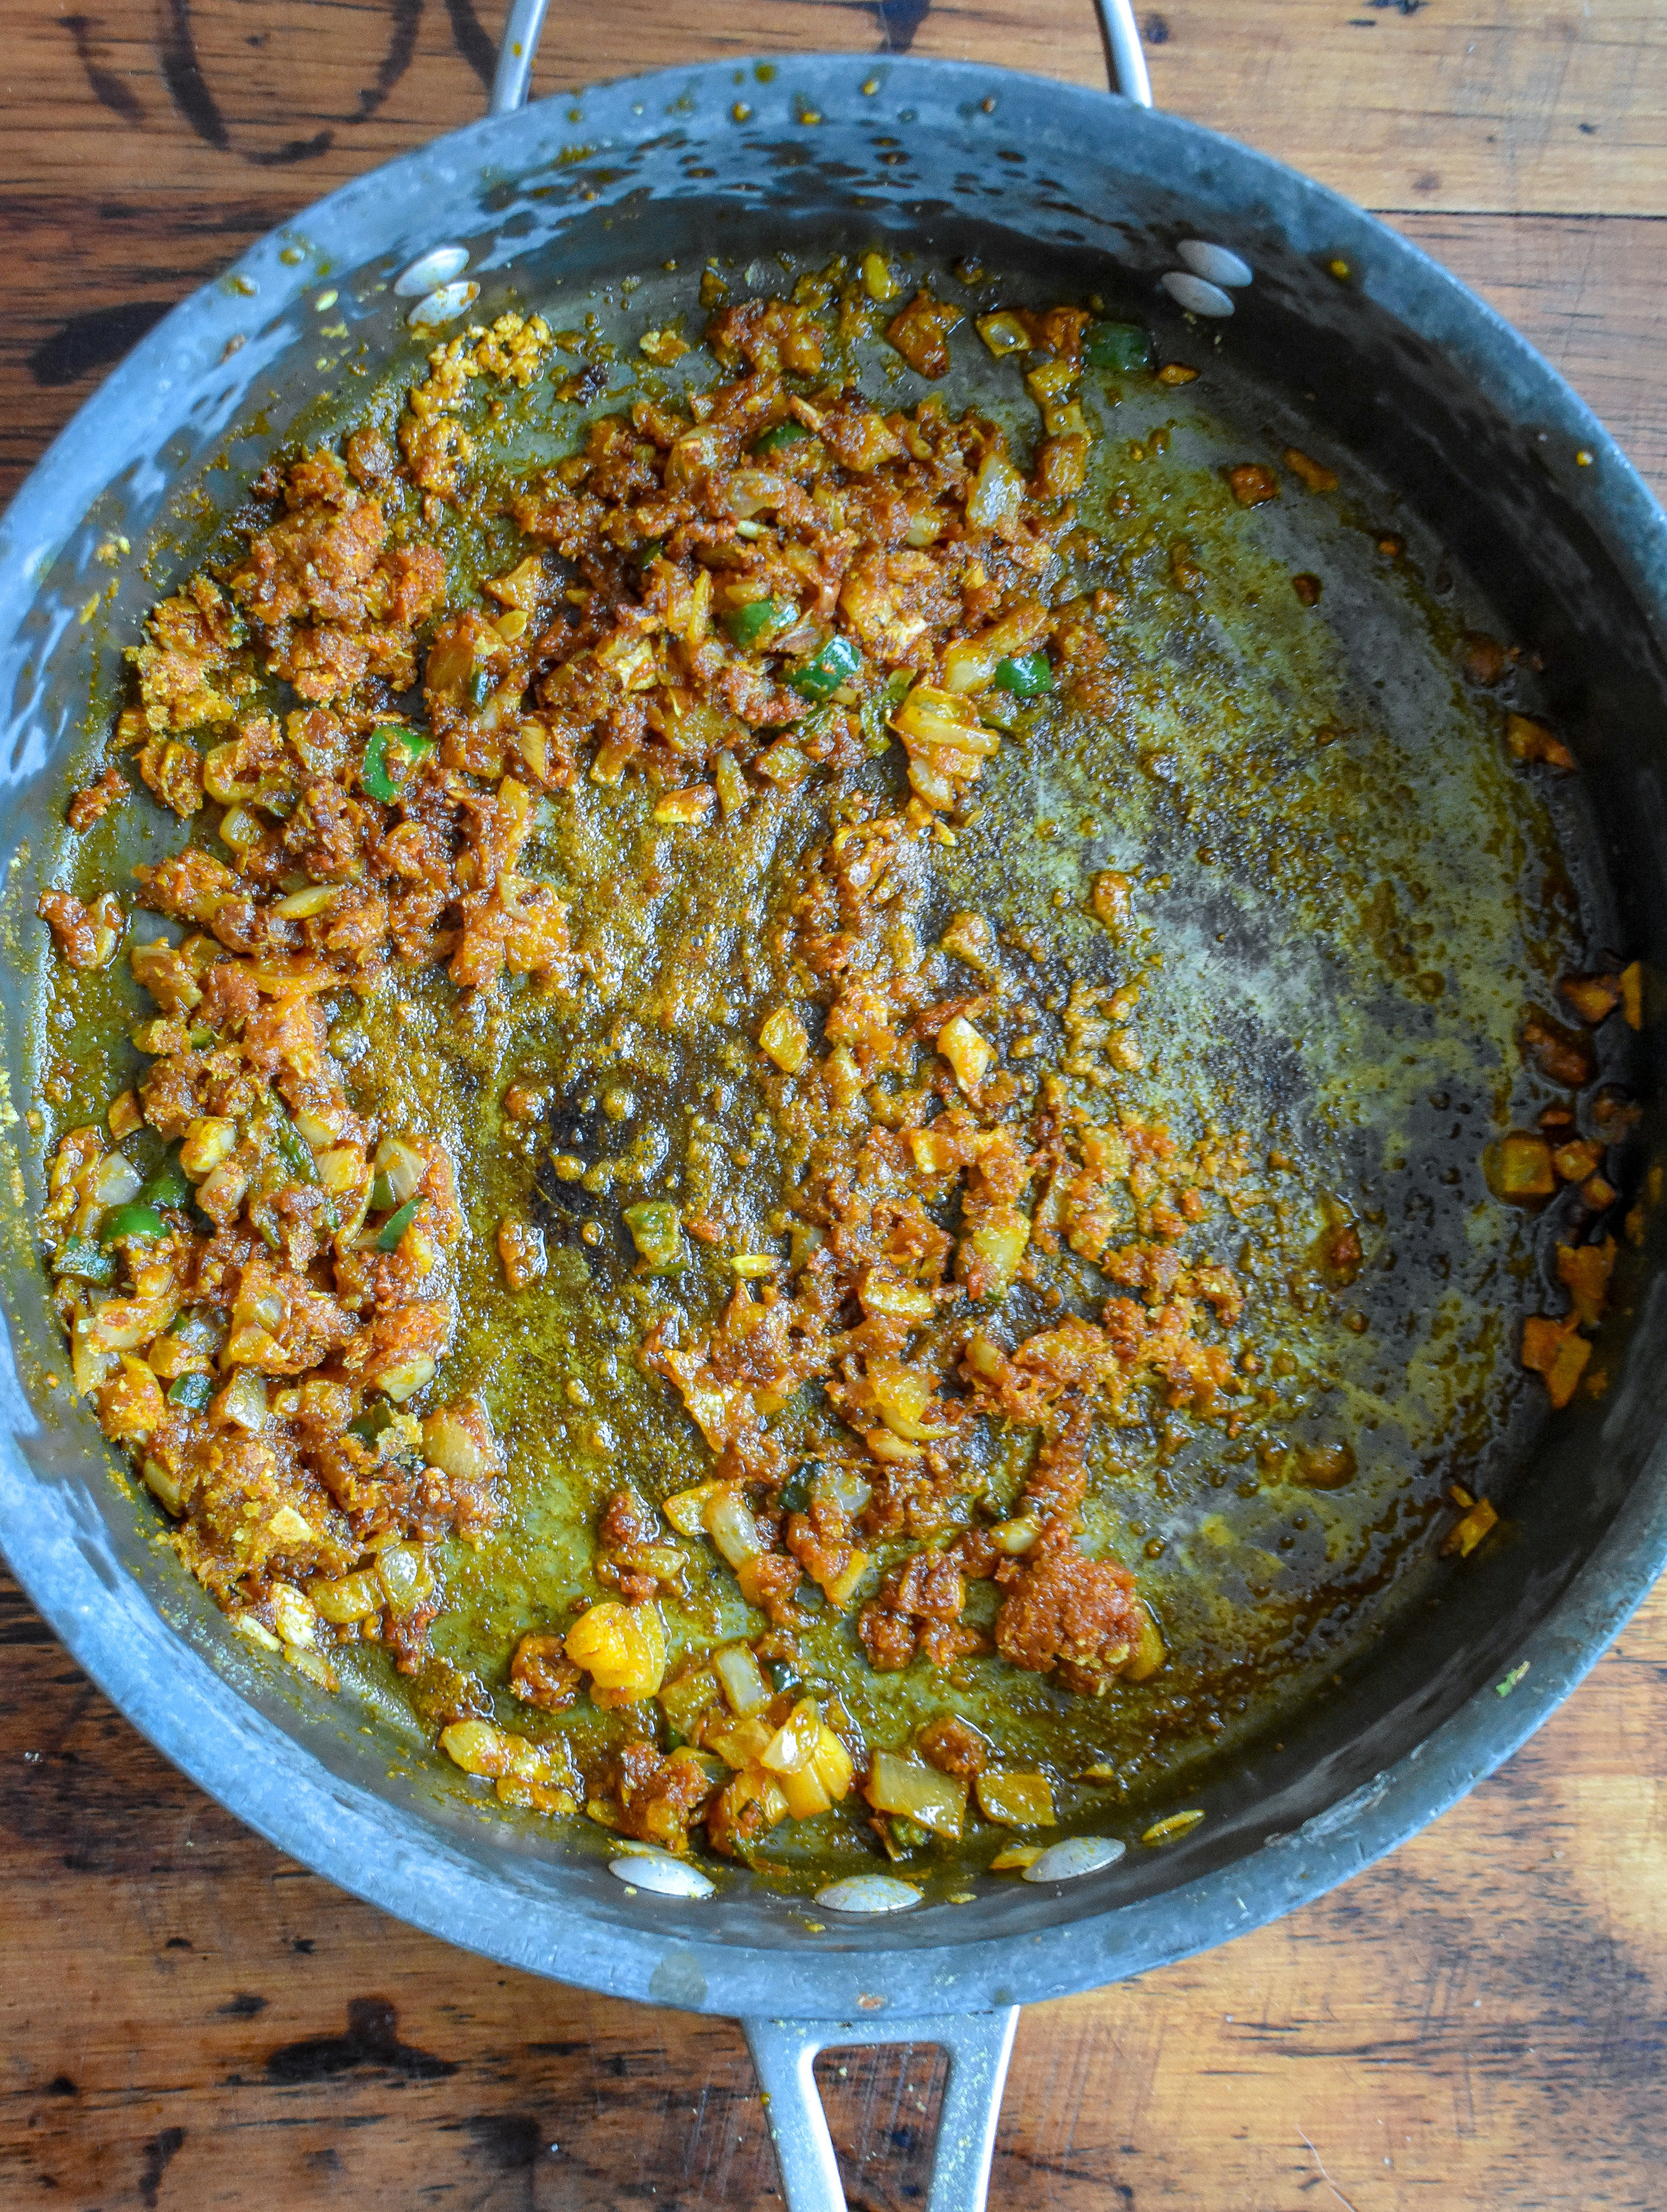 2. While the lentils cook, add palm oil to large frying pan and warm for 90 seconds. Add in onion, garlic, serrano and cook for another 3 minutes. Add in spices and coat well.